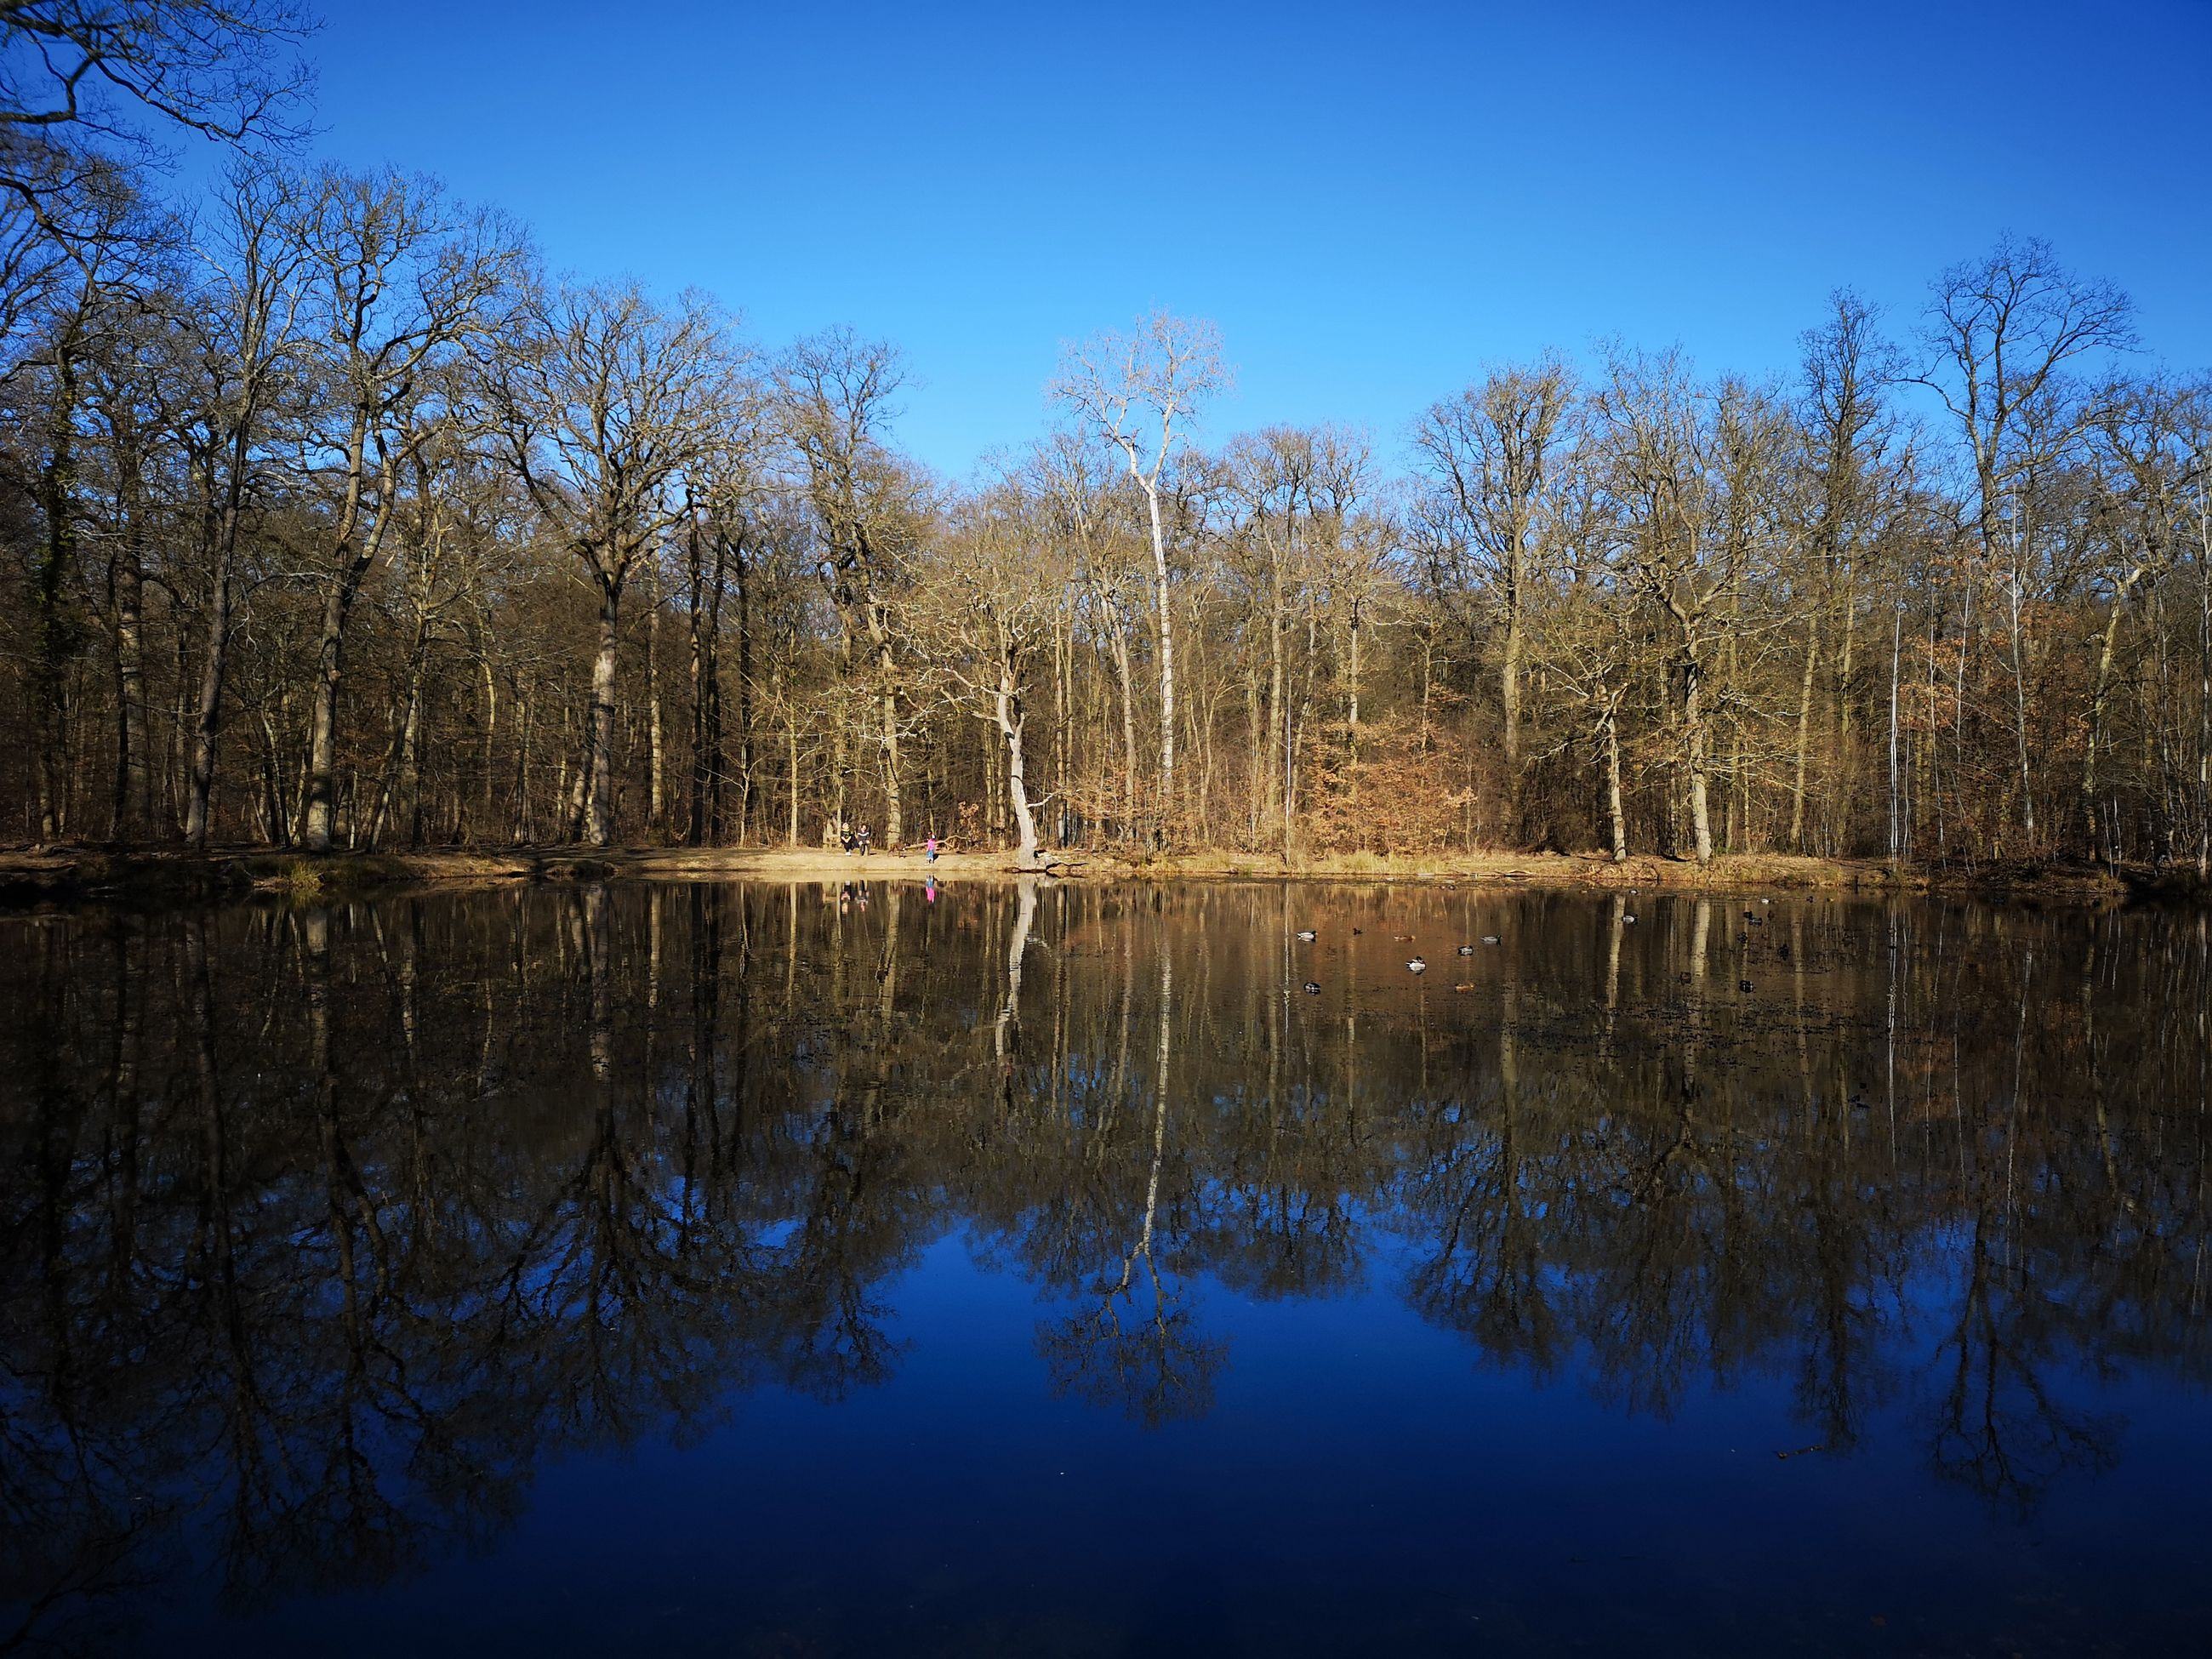 reflection, water, tree, tranquility, sky, lake, plant, beauty in nature, tranquil scene, scenics - nature, nature, waterfront, no people, non-urban scene, blue, bare tree, day, clear sky, forest, outdoors, swamp, reflection lake